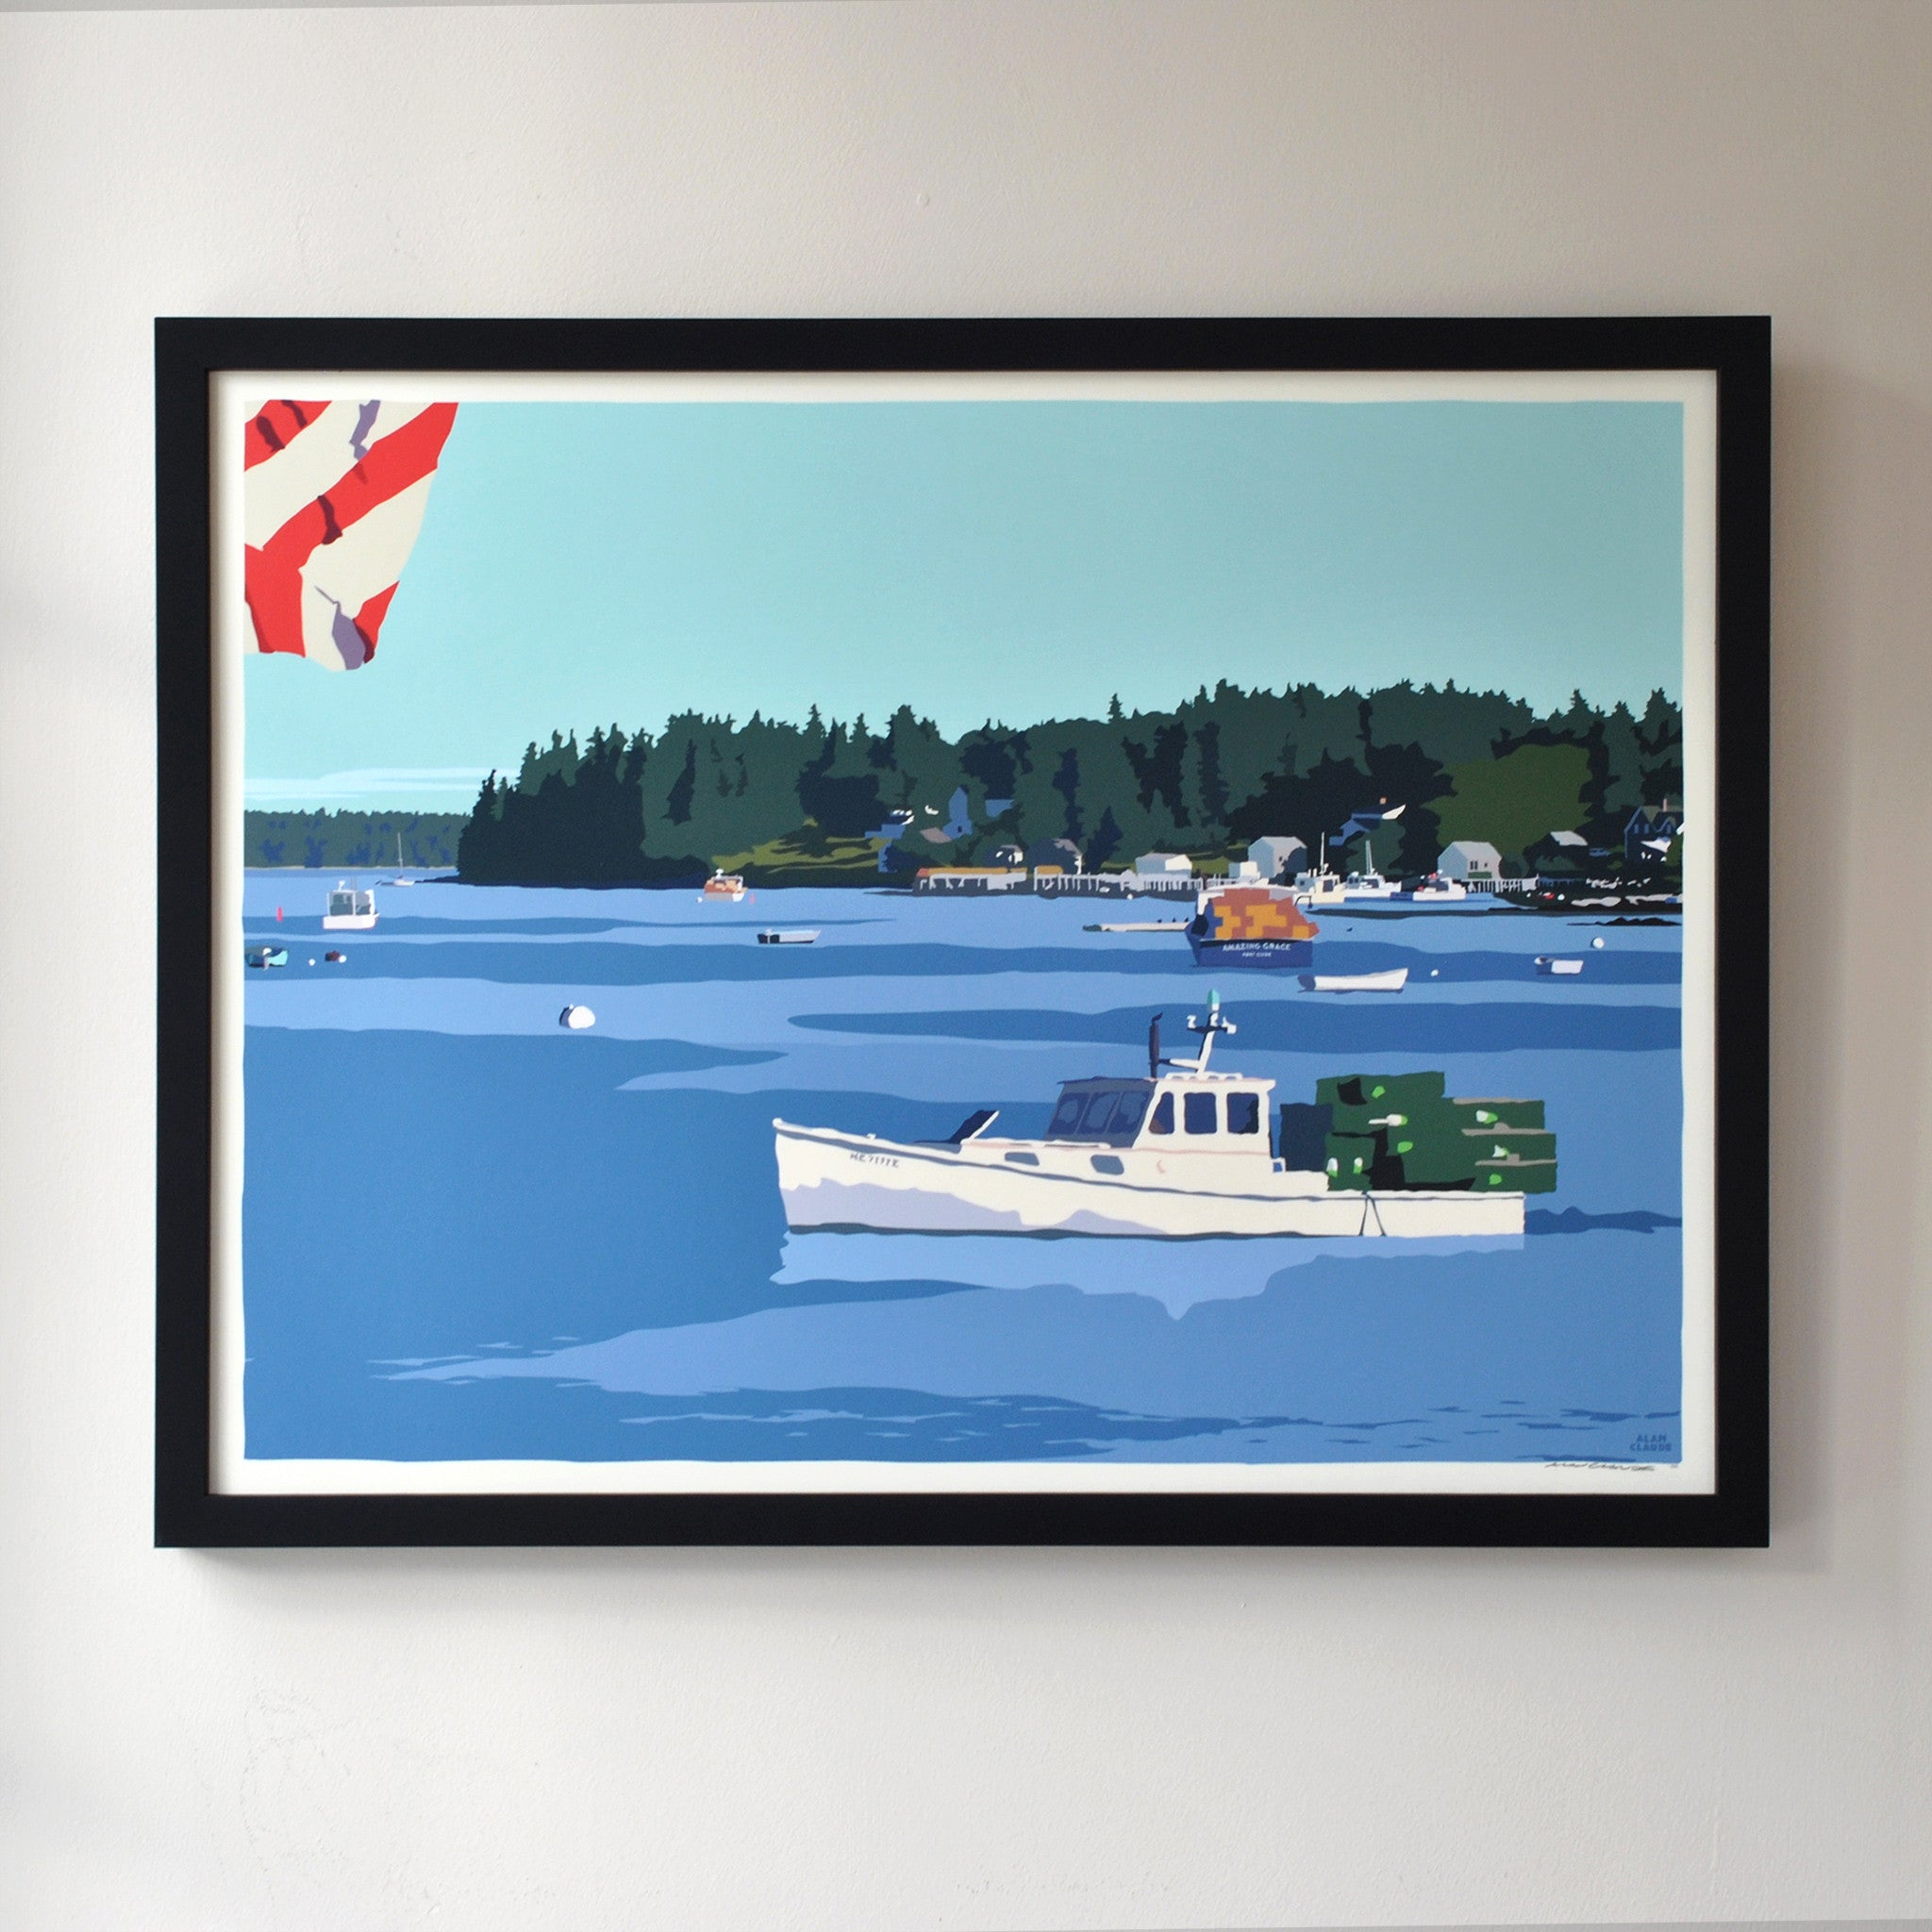 "Port Clyde Lobster Boat Art Print 18"" x 24"" Framed Wall Poster - Maine"